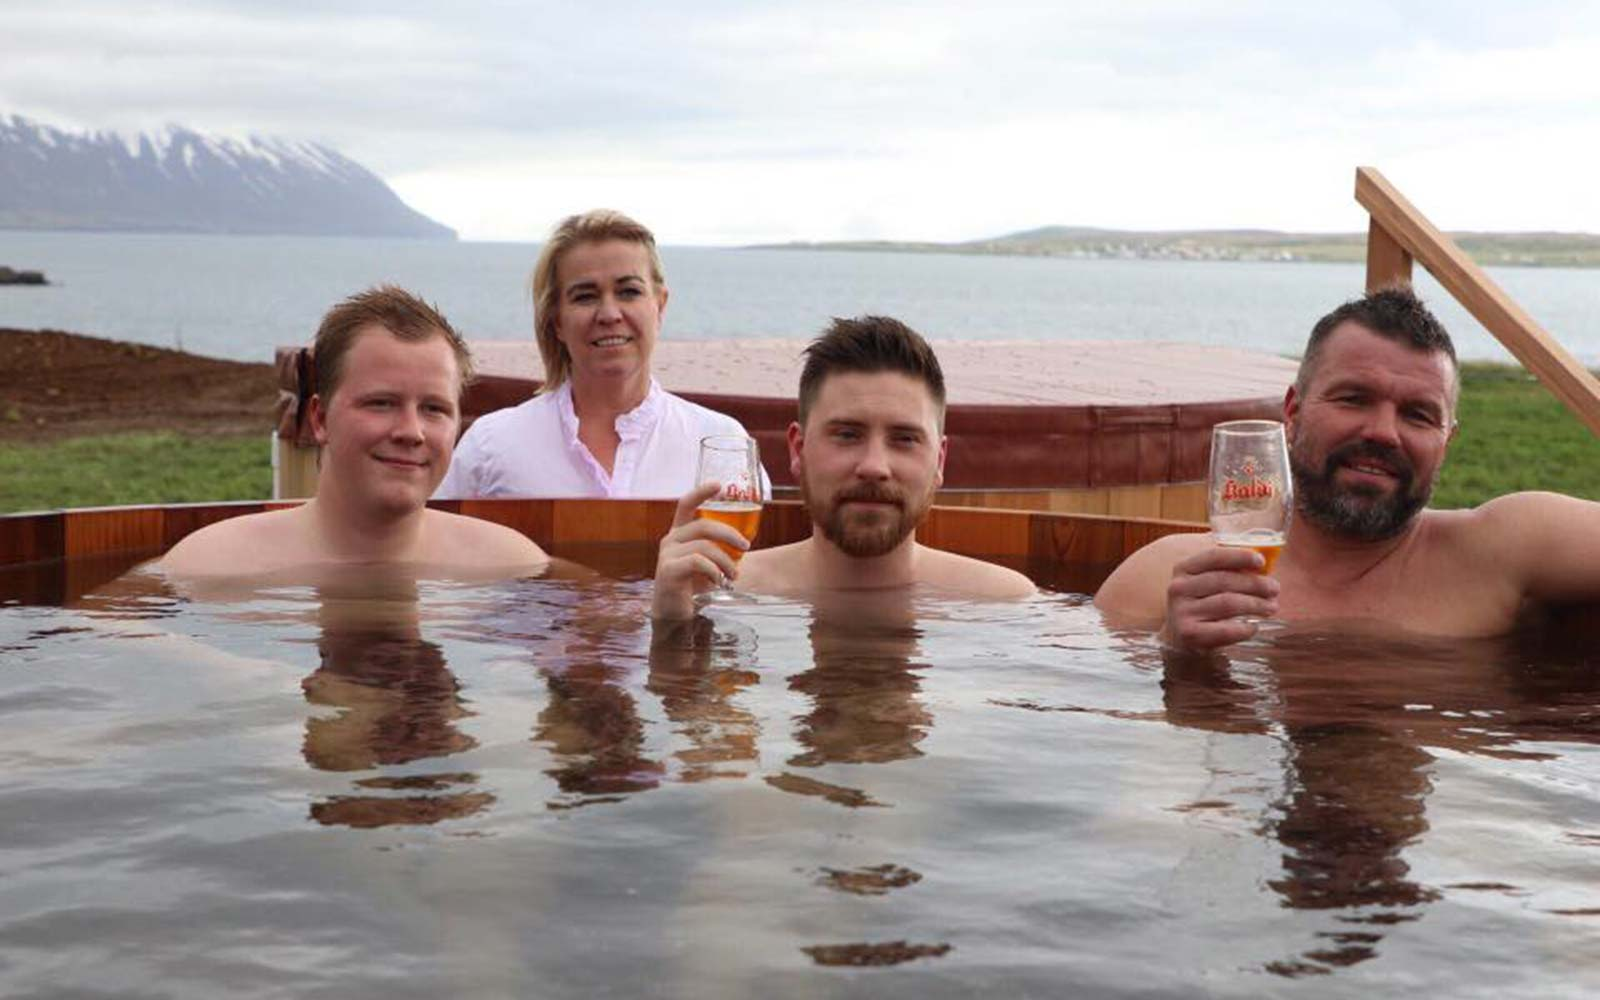 There Is a Spa in Iceland Where You Can Soak in Tubs of Beer